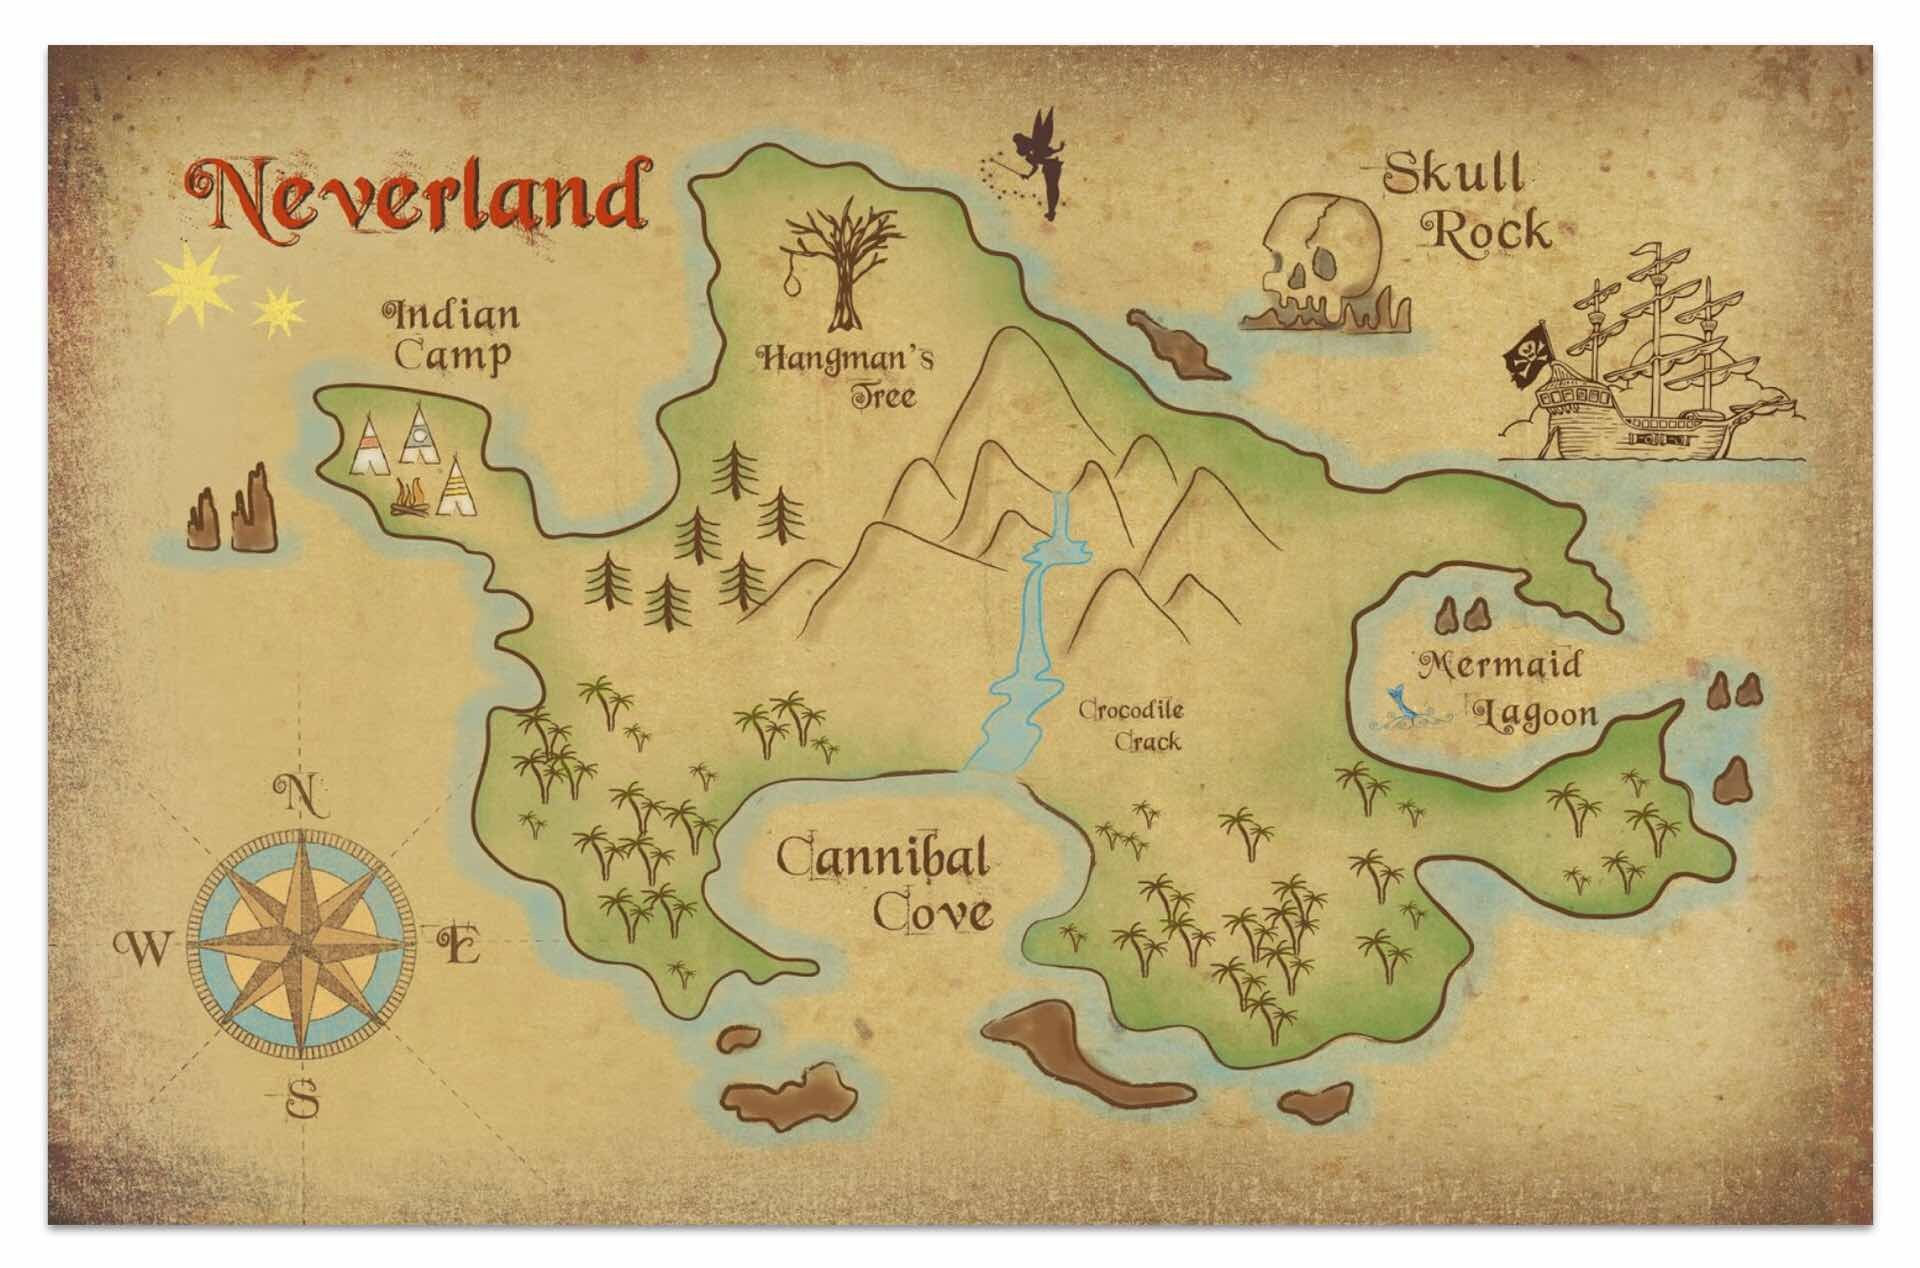 maps-of-fictional-worlds-guide-peter-pan-neverland